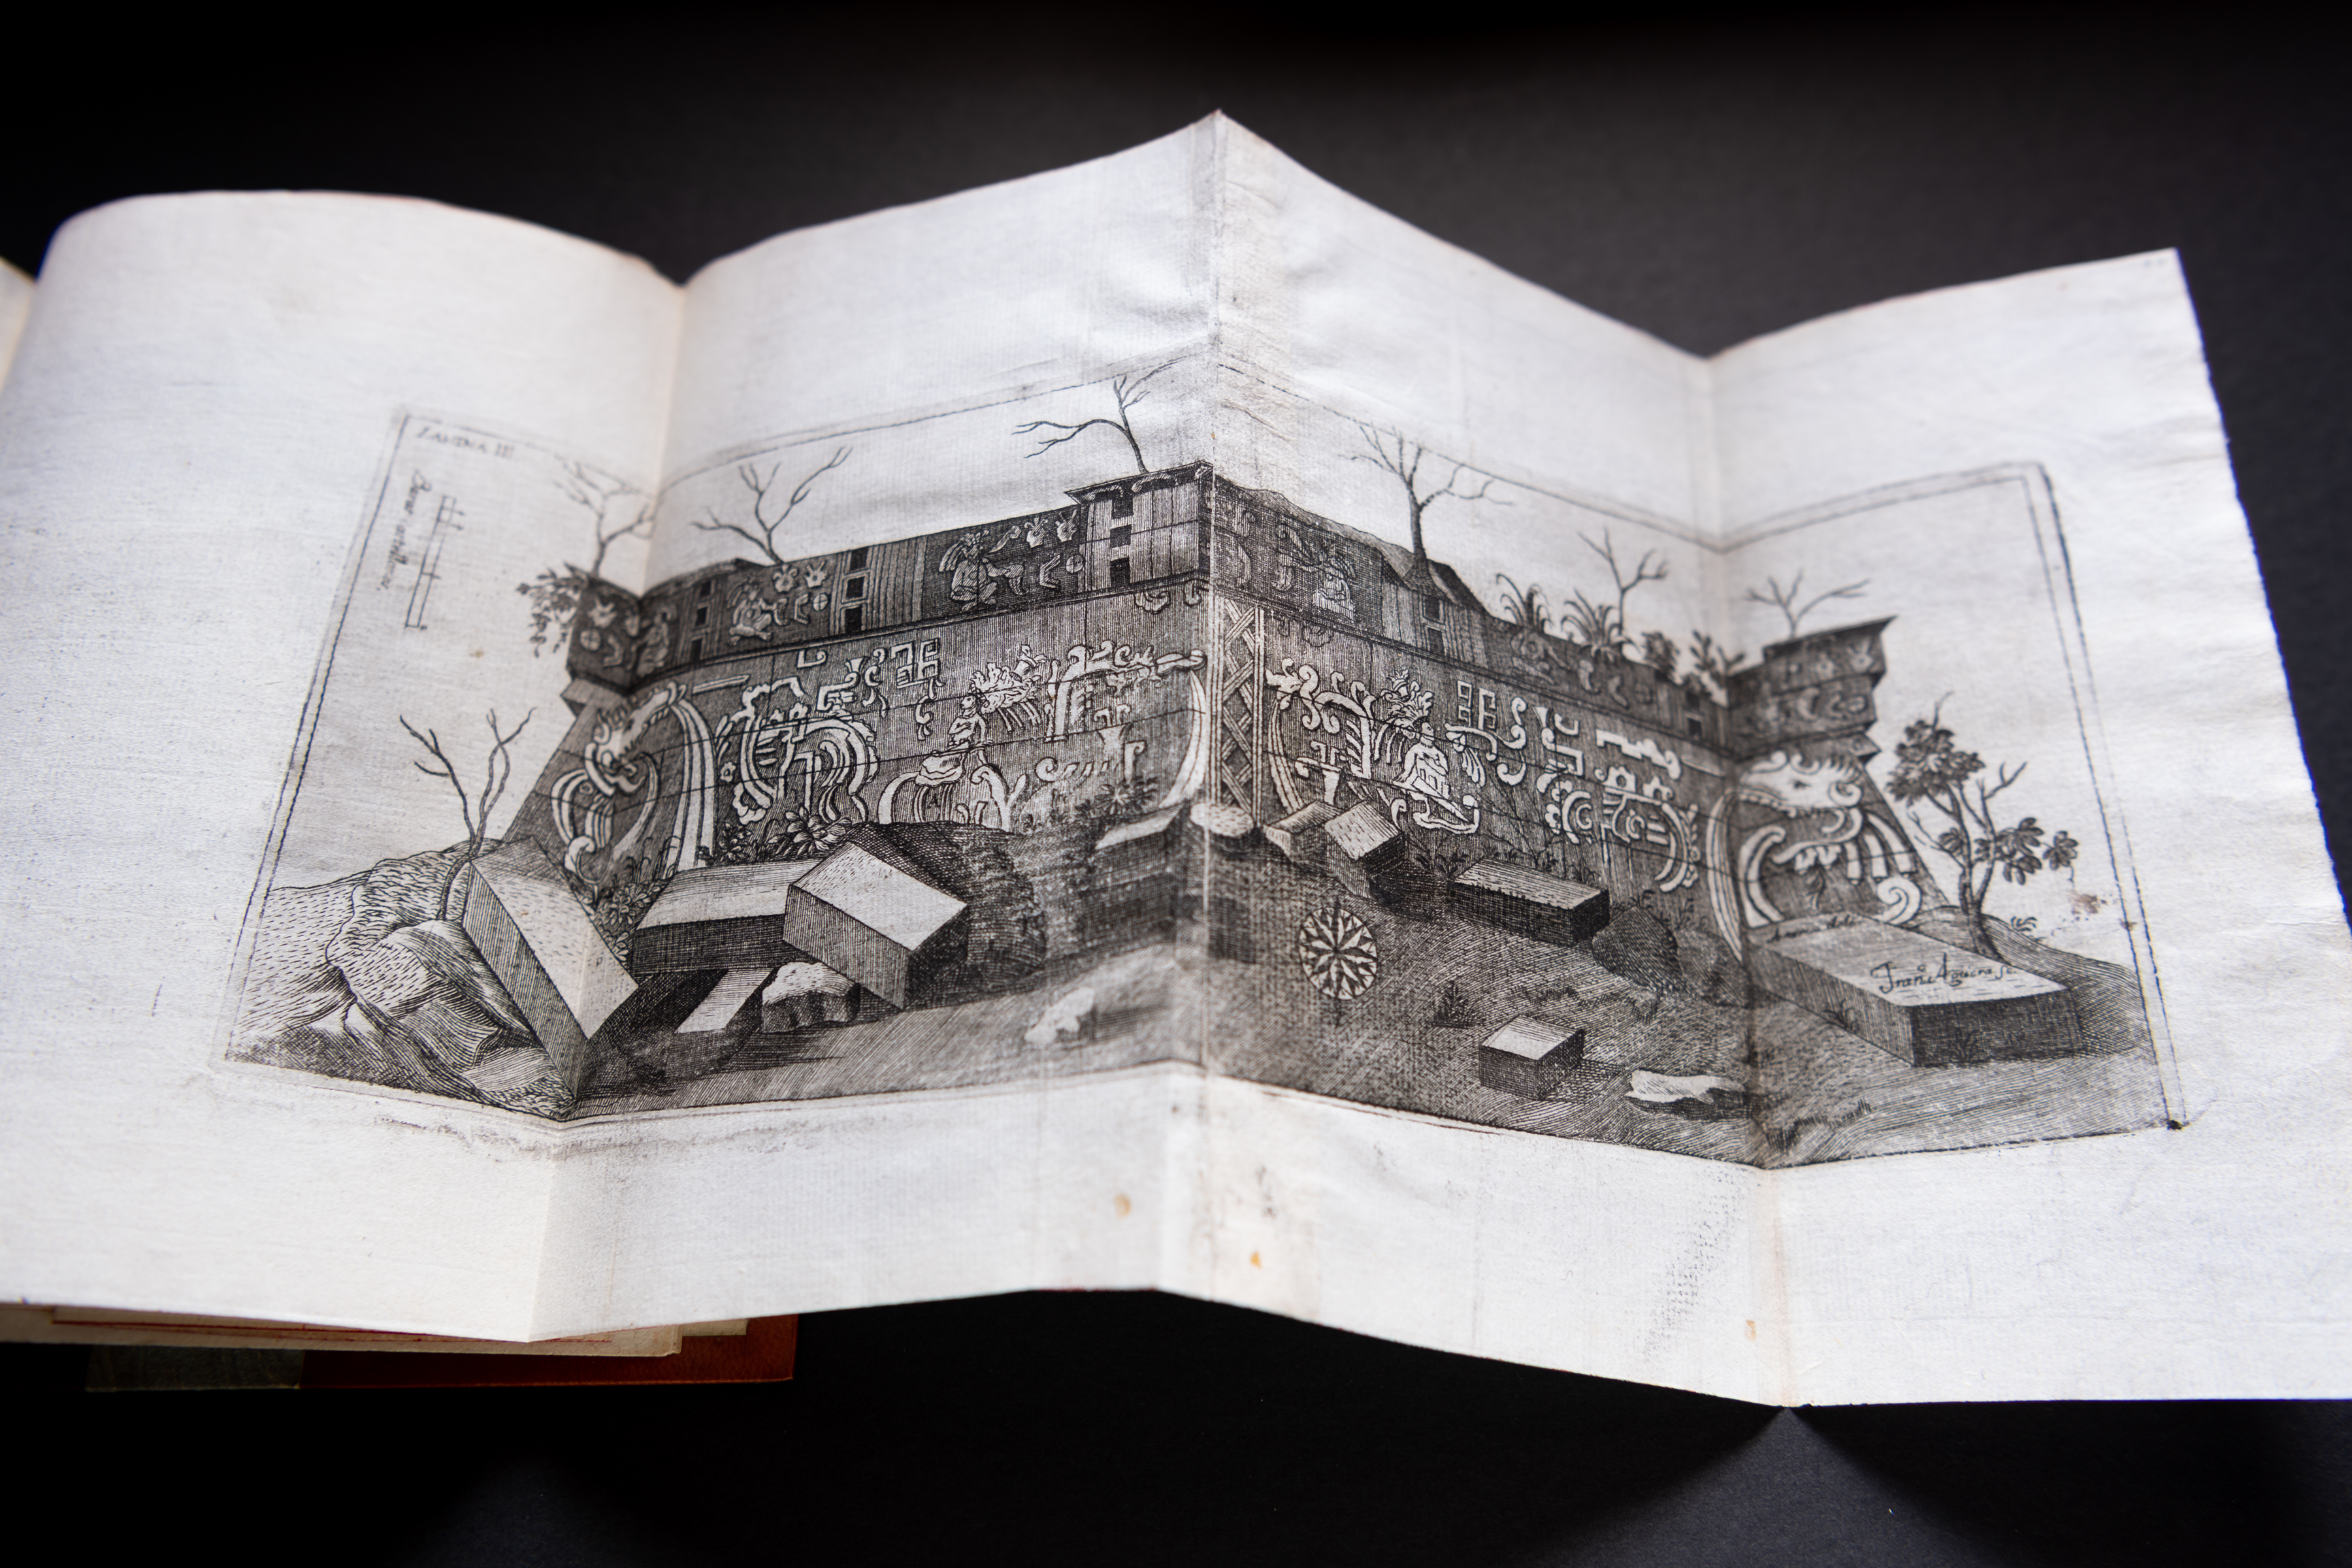 Detail of a printed book shows a fold-out illustration of stones outside of a buildings facade.